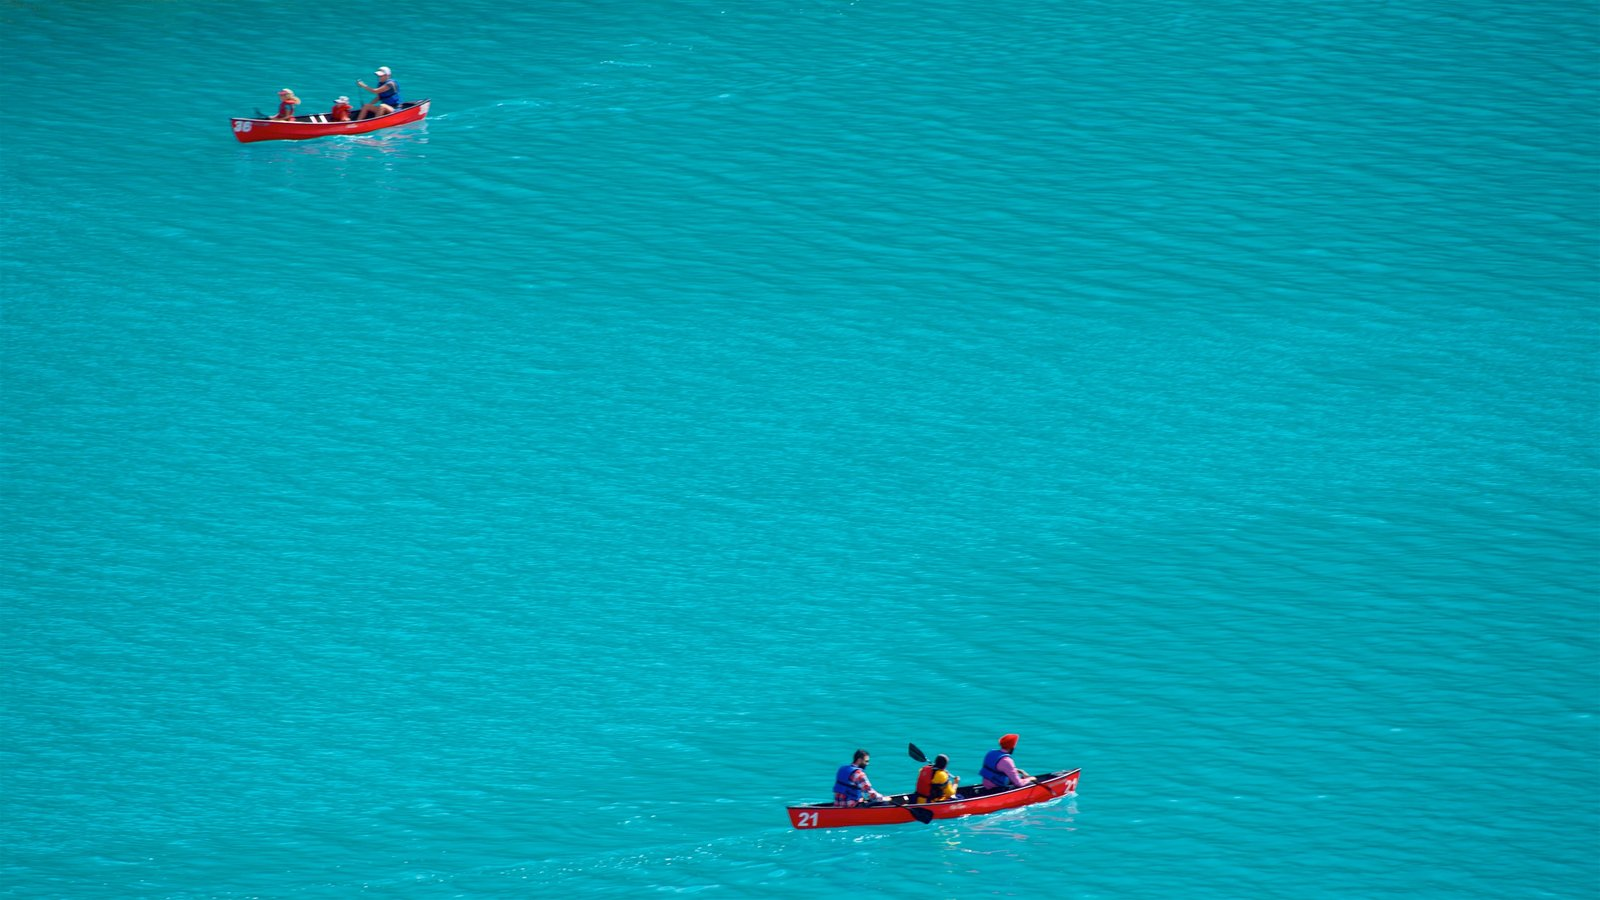 Canadian Rockies which includes a lake or waterhole and kayaking or canoeing